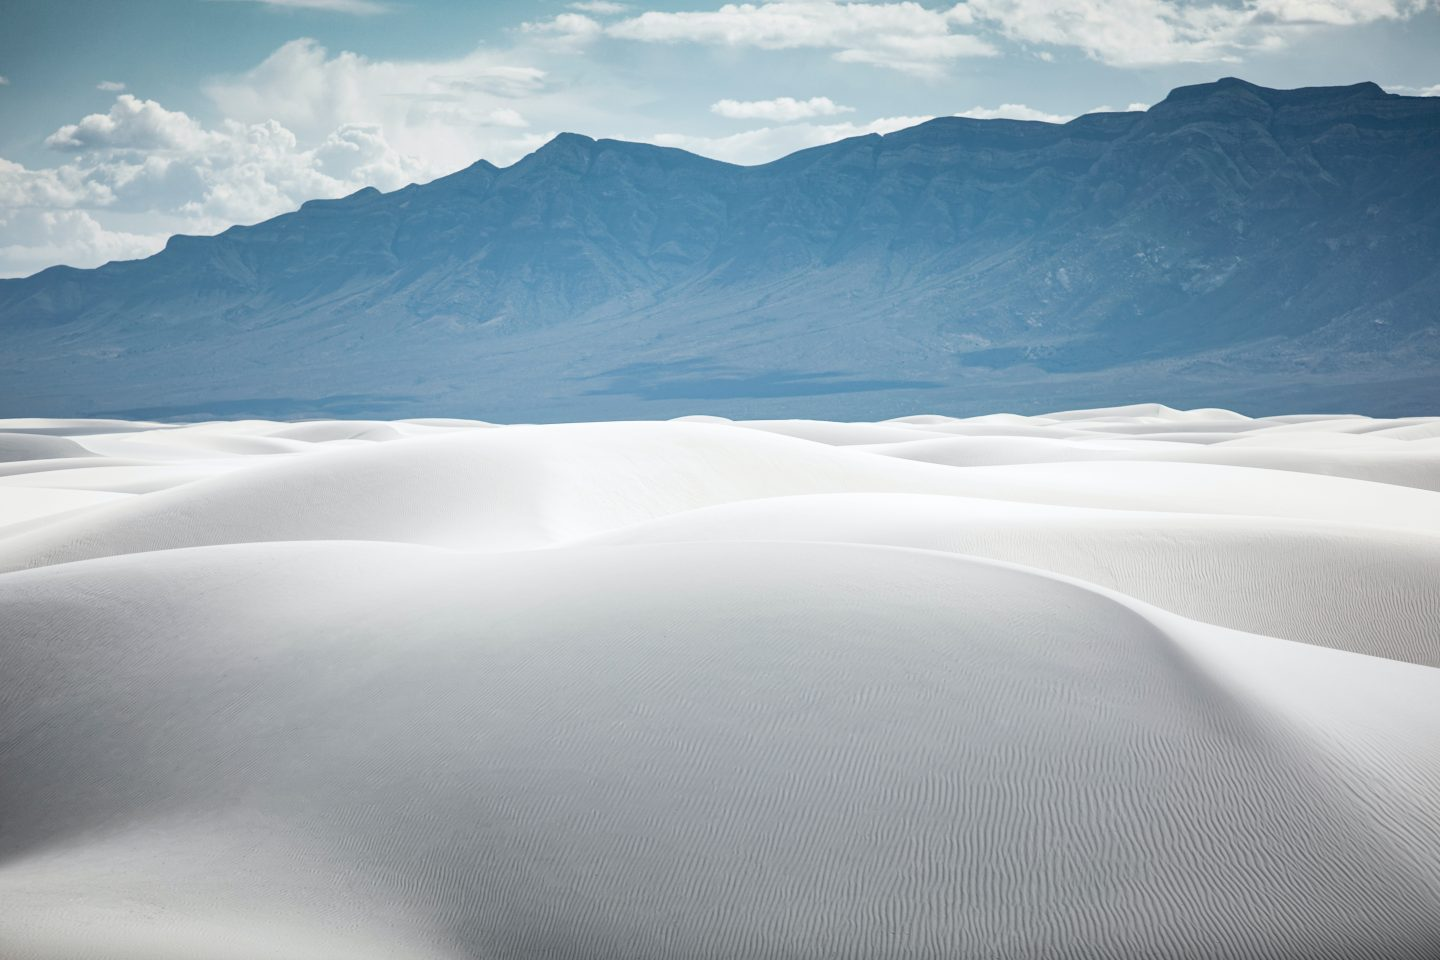 White Sands National Park near Alamogordo, New Mexico is in my top 10 favorite beautiful places in the US to visit.